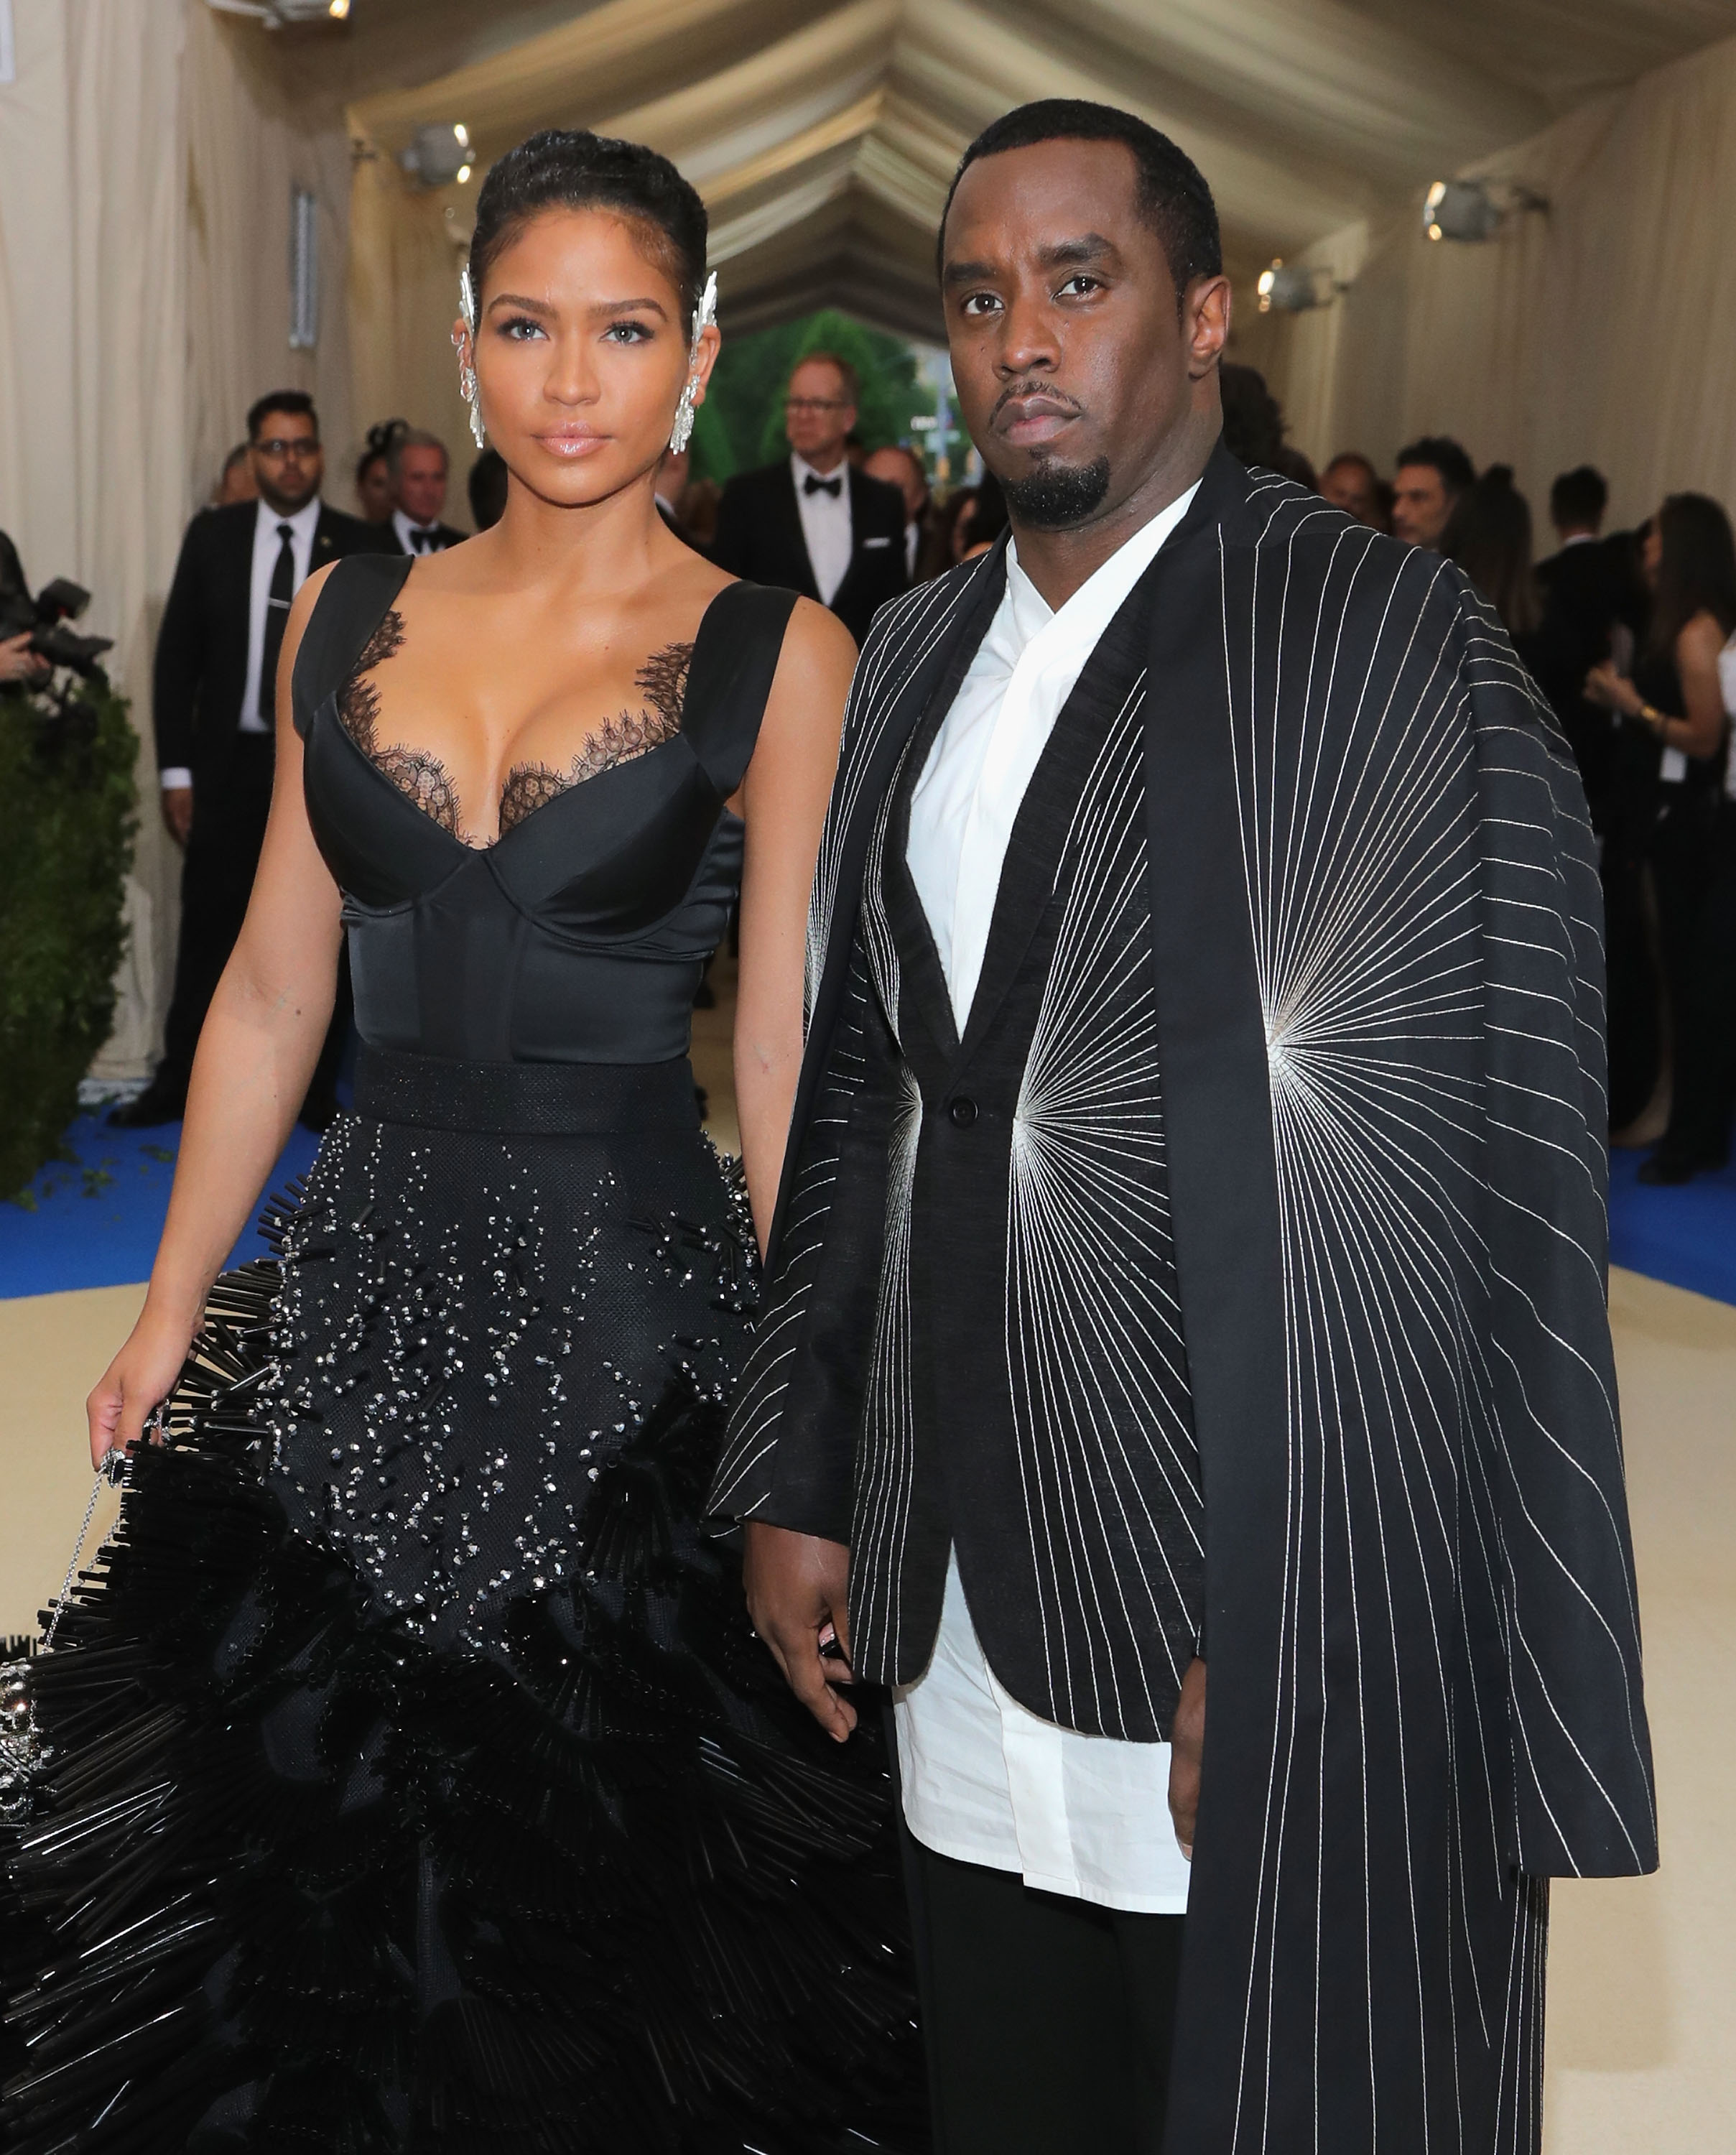 The most stylish couples of the Met Gala | 9Style